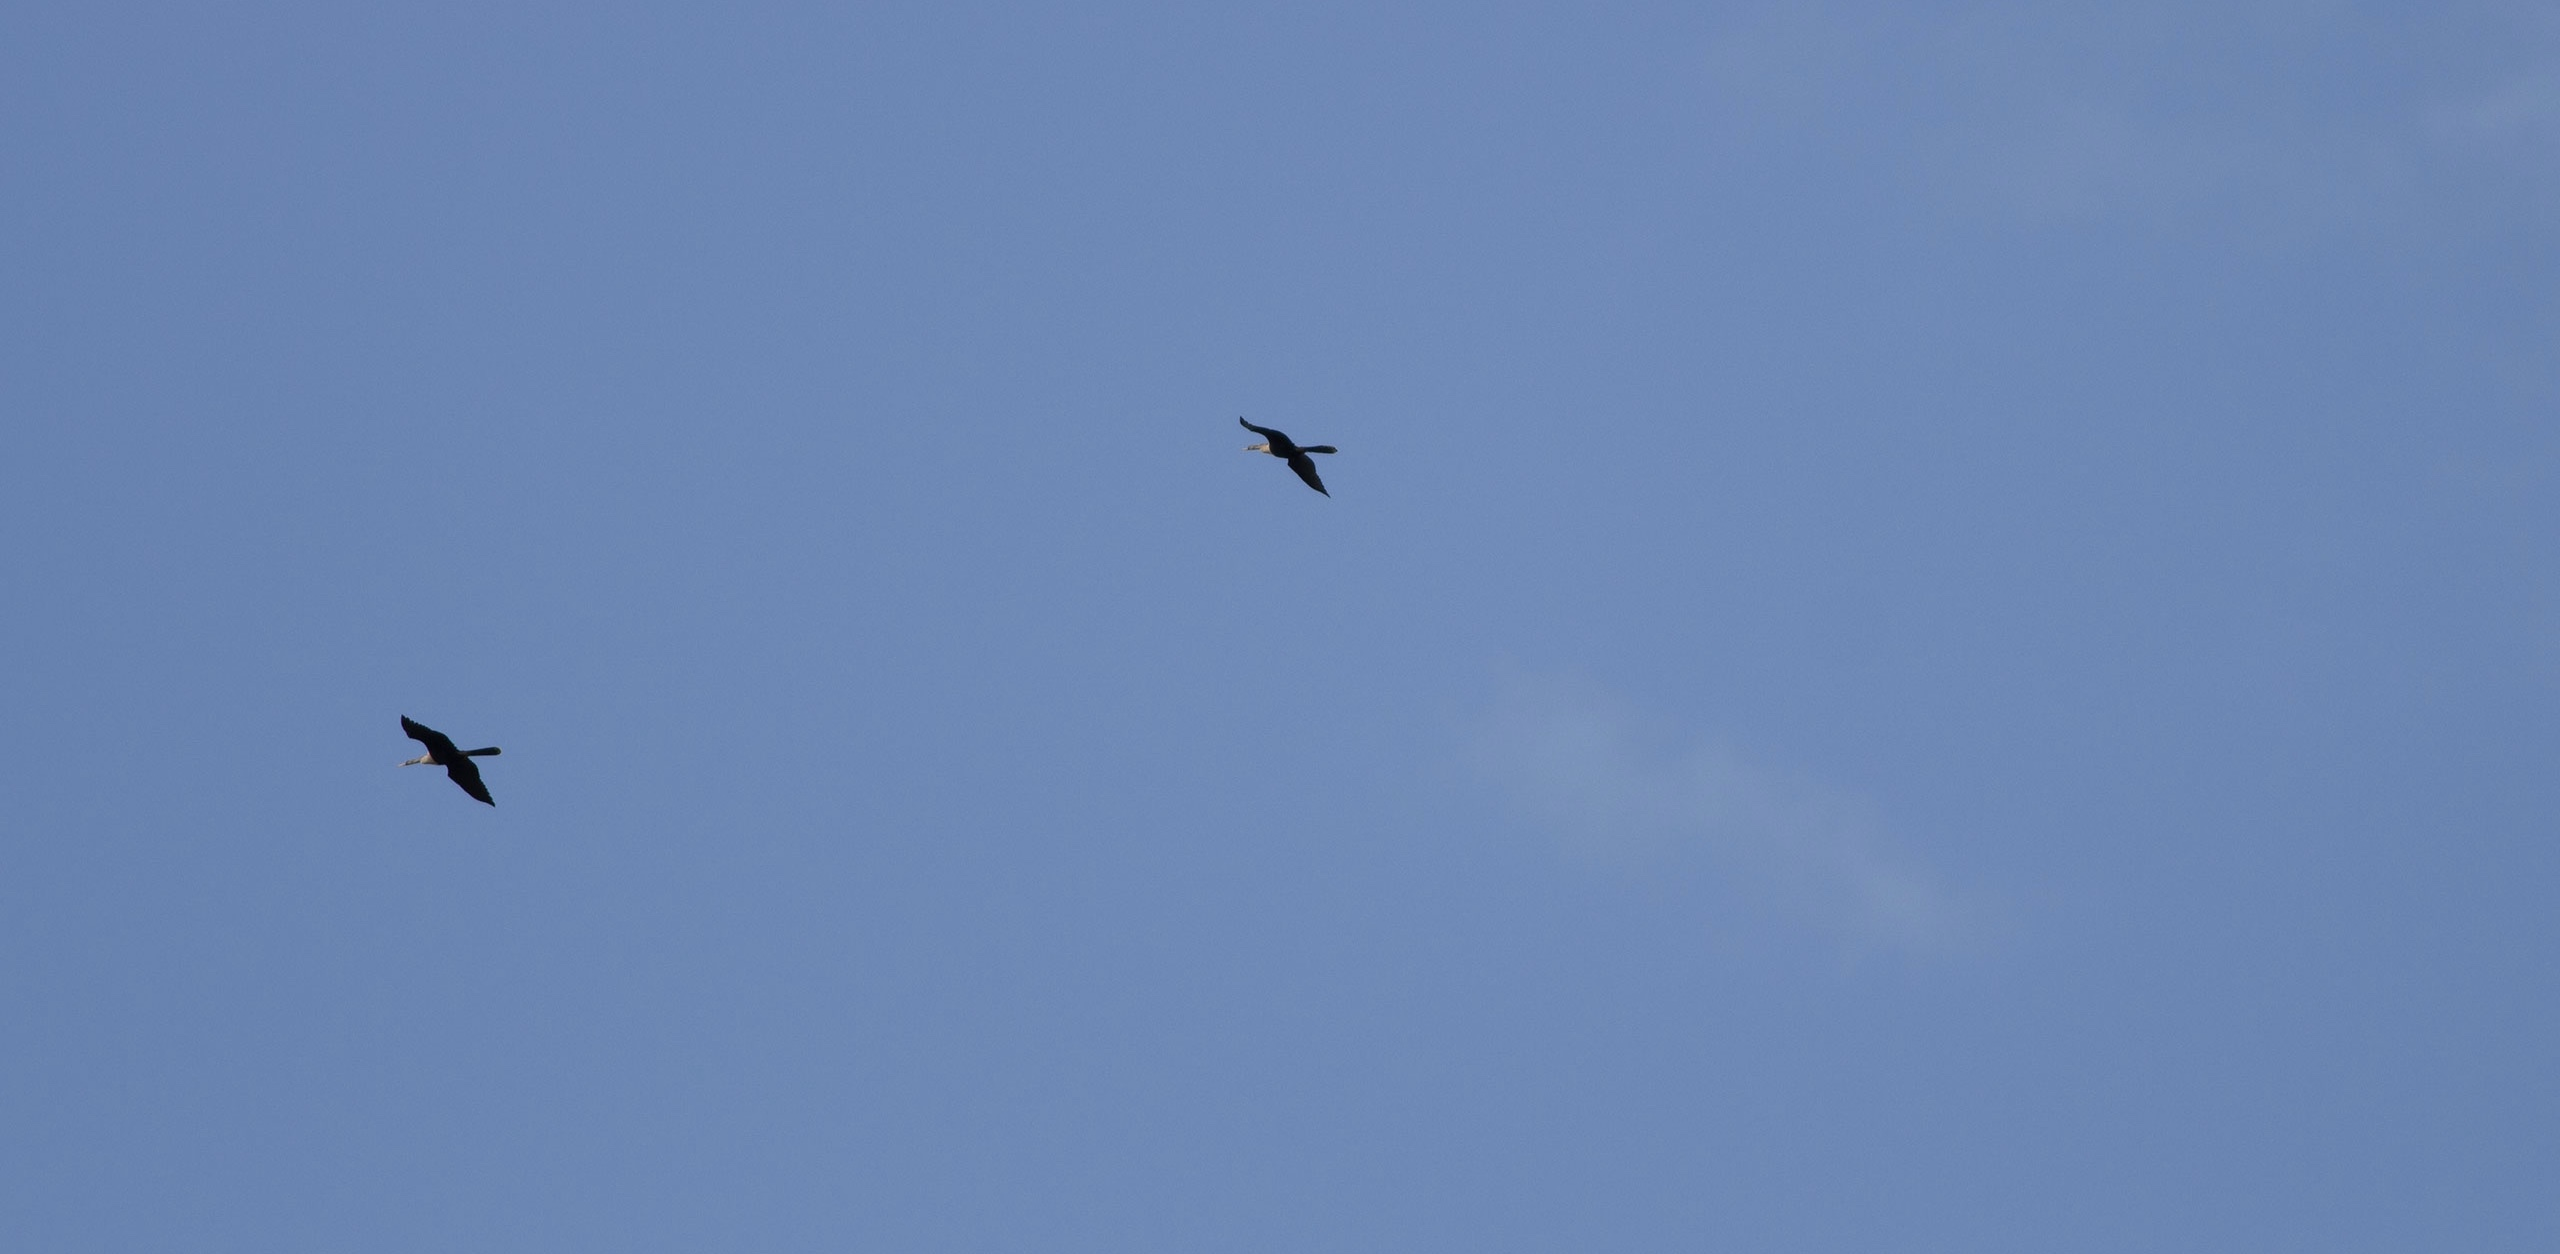 far away anhingas soaring in a blue sky